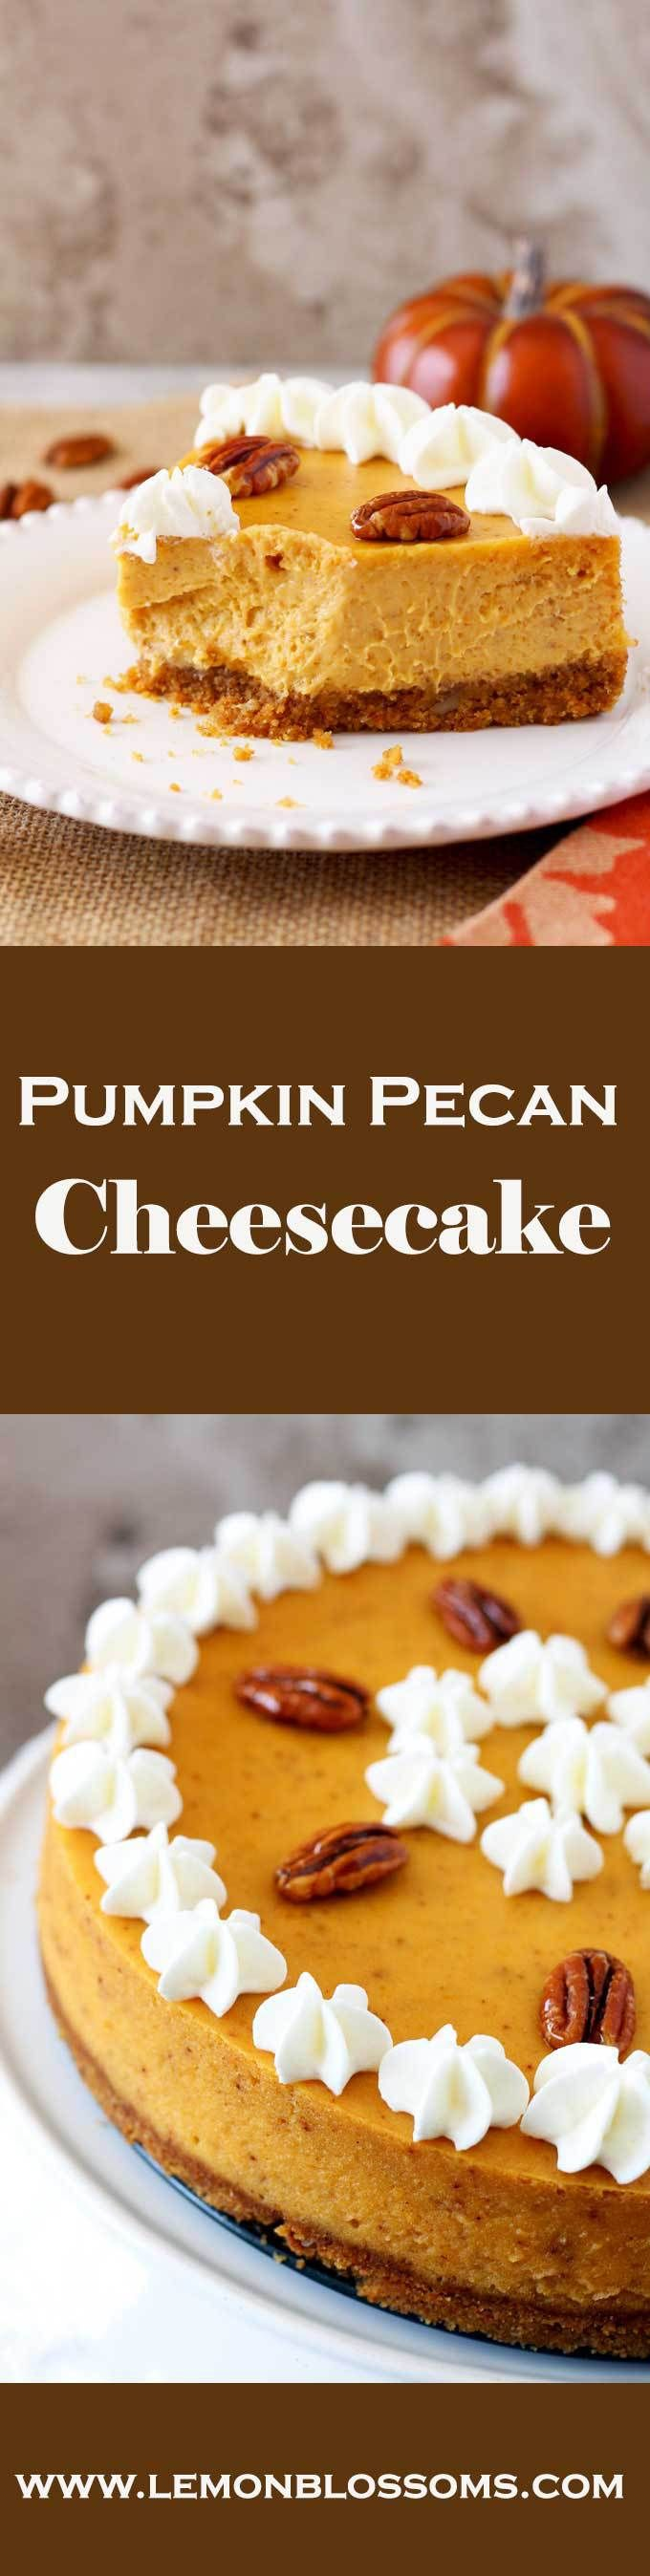 An amazing combination of creamy pumpkin spiced cheesecake with a rich graham cracker and pecan crust this Pumpkin Pecan Cheesecake combines all the fall flavors into one delicious and super creamy bite!